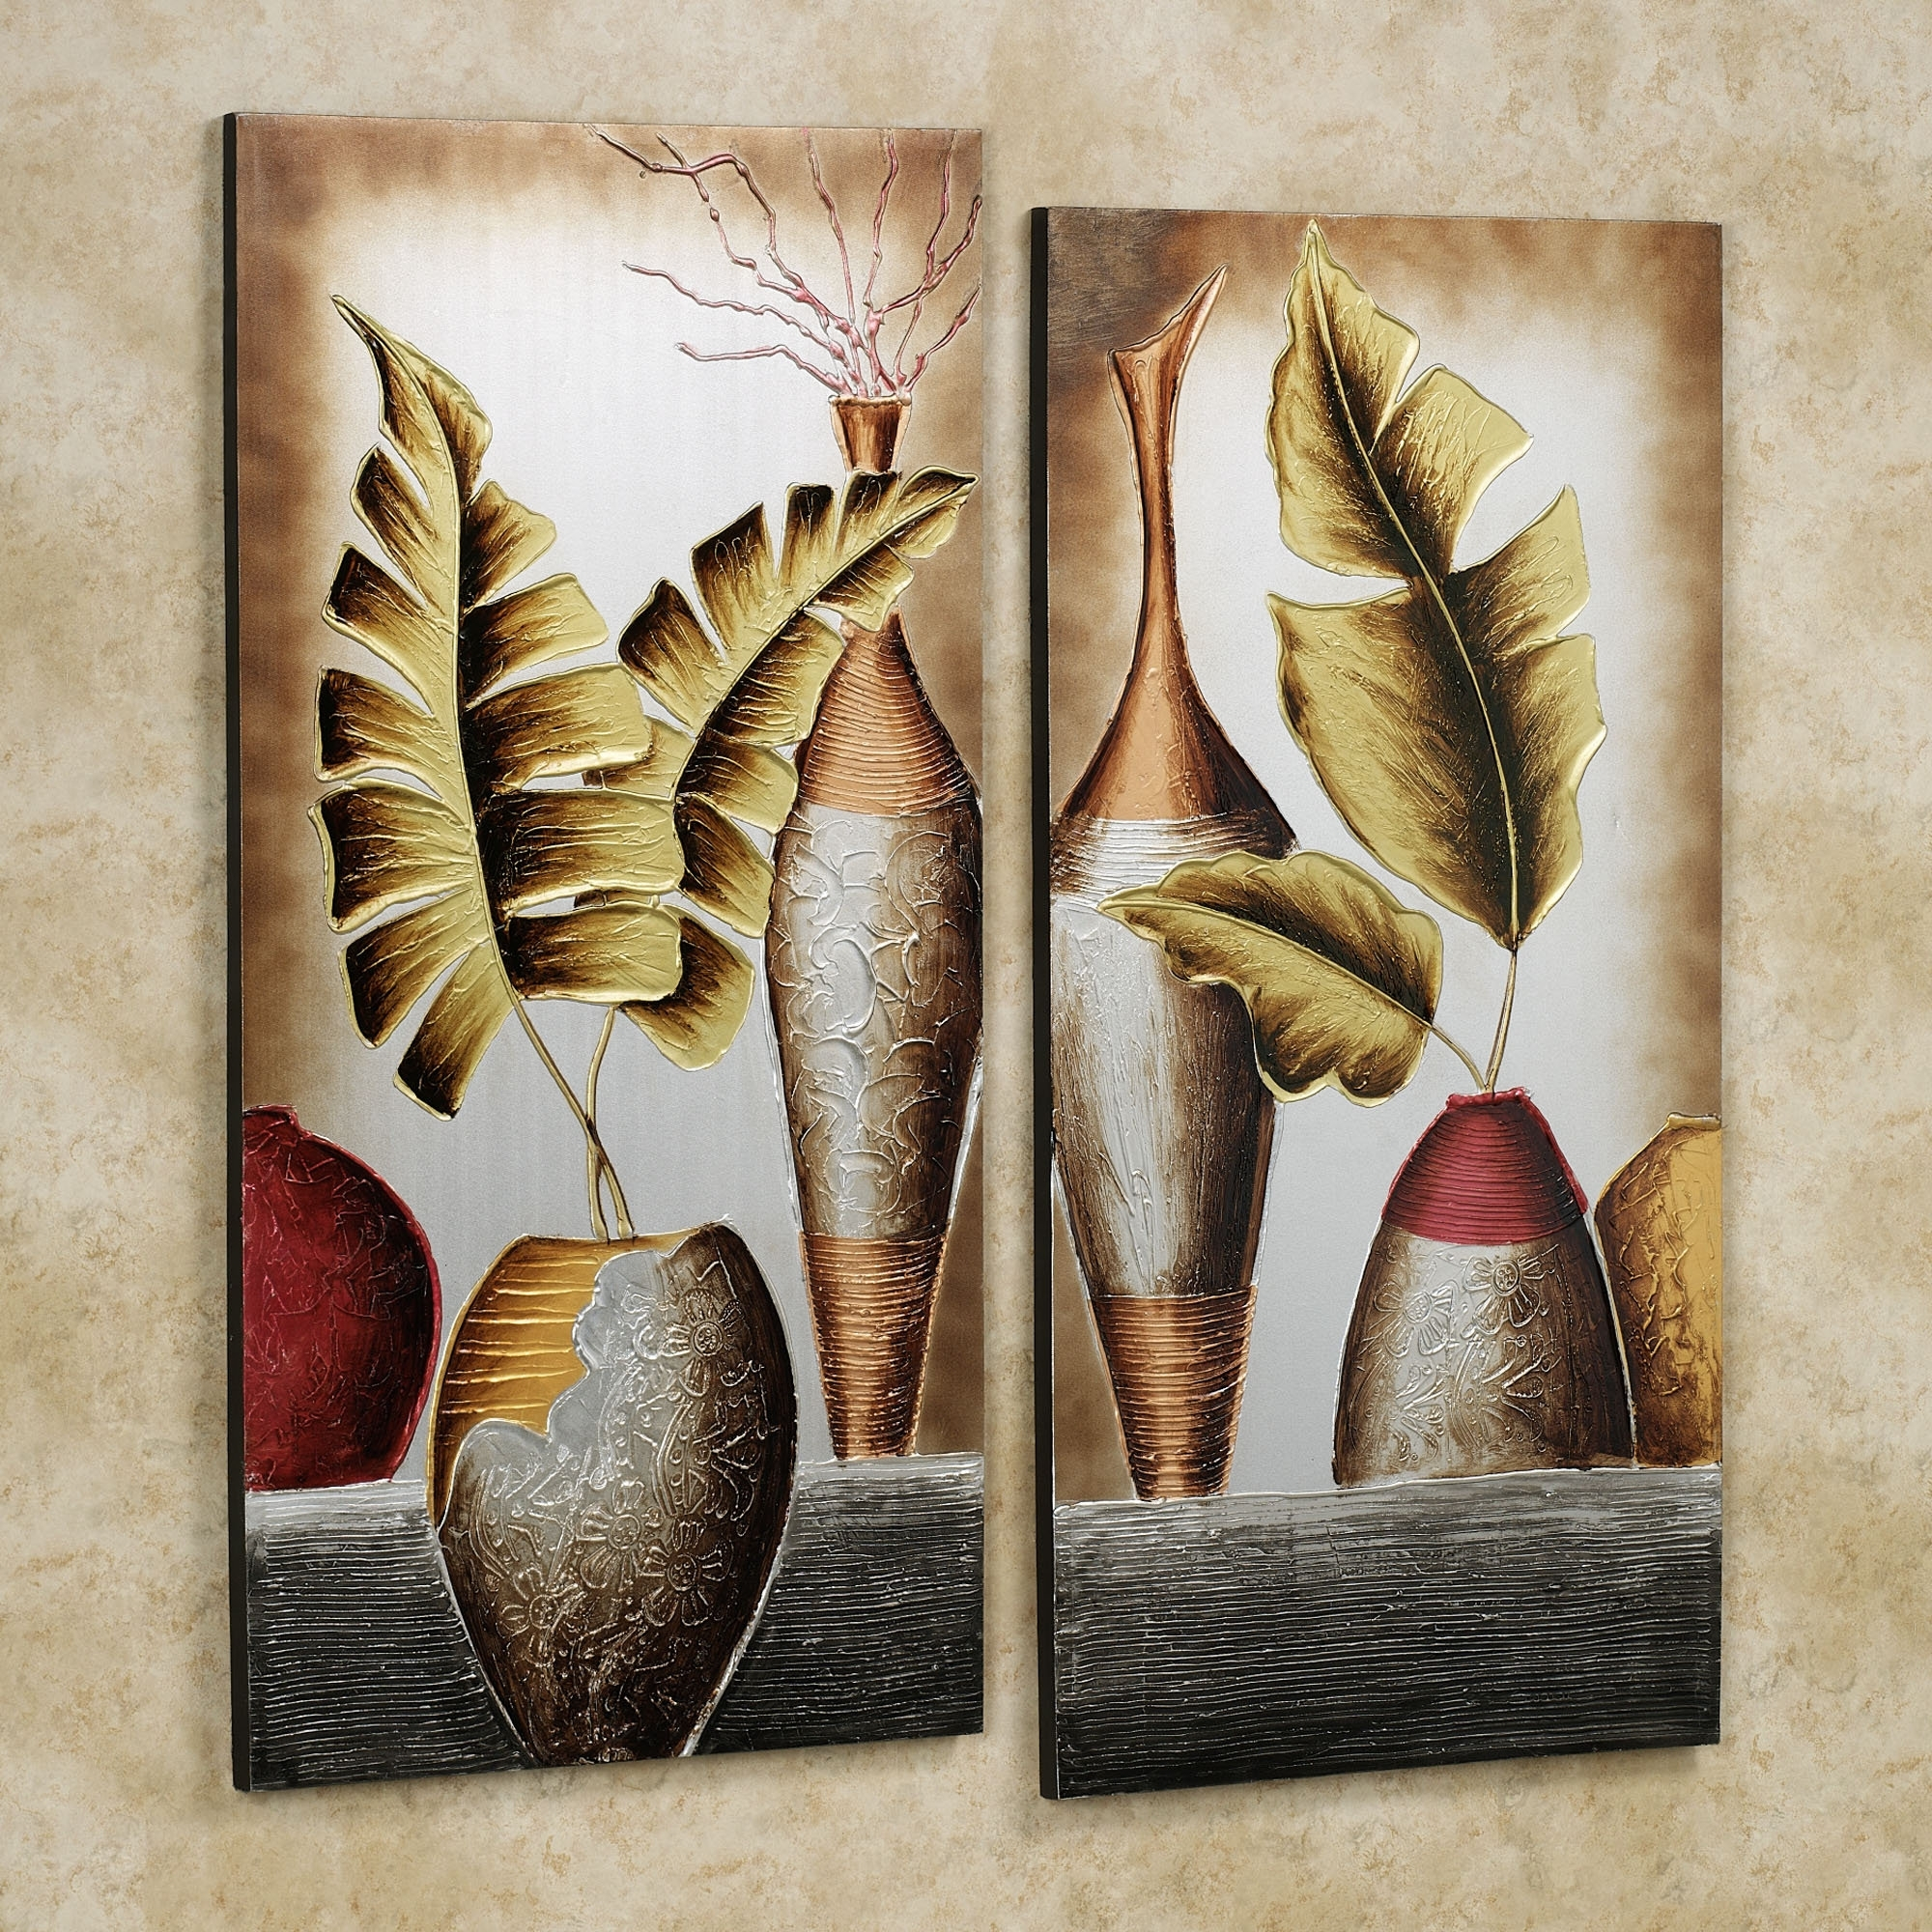 Wall Art Designs: Wall Art Set Canvas Wall Art Set Unique Modern Within Best And Newest Leaves Canvas Wall Art (View 7 of 15)